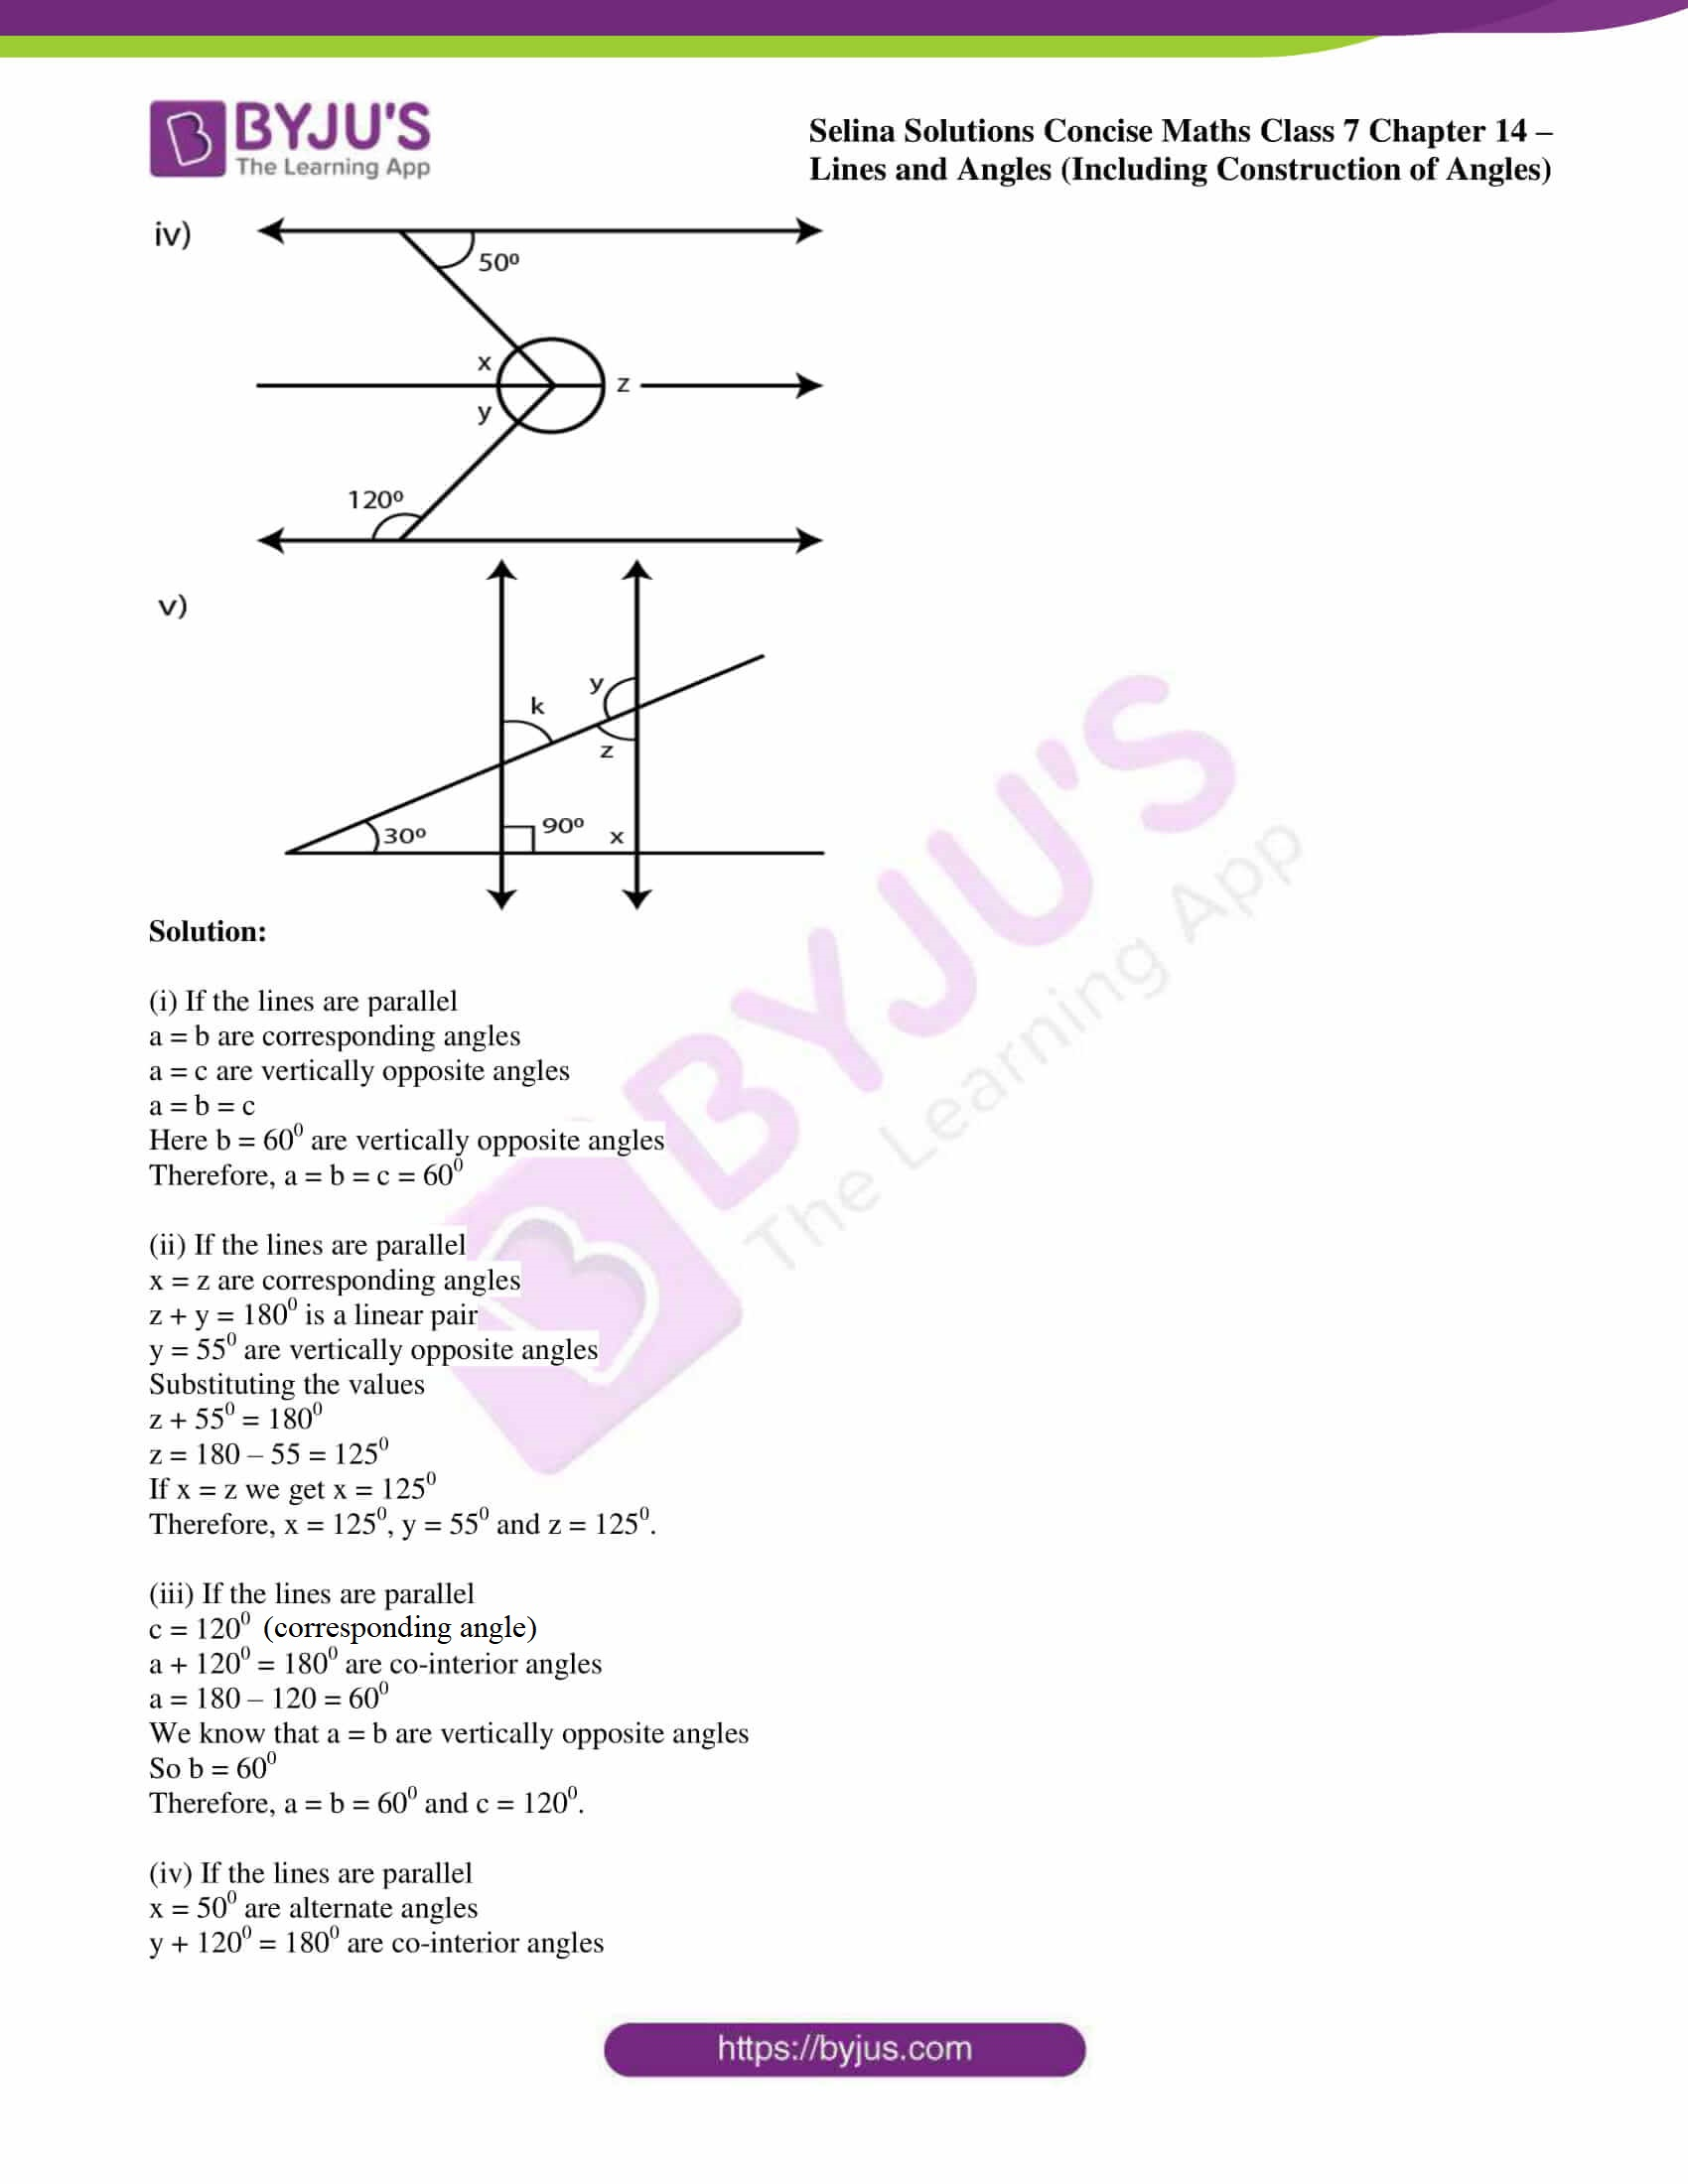 selina solution concise maths class 7 ch 14b 07